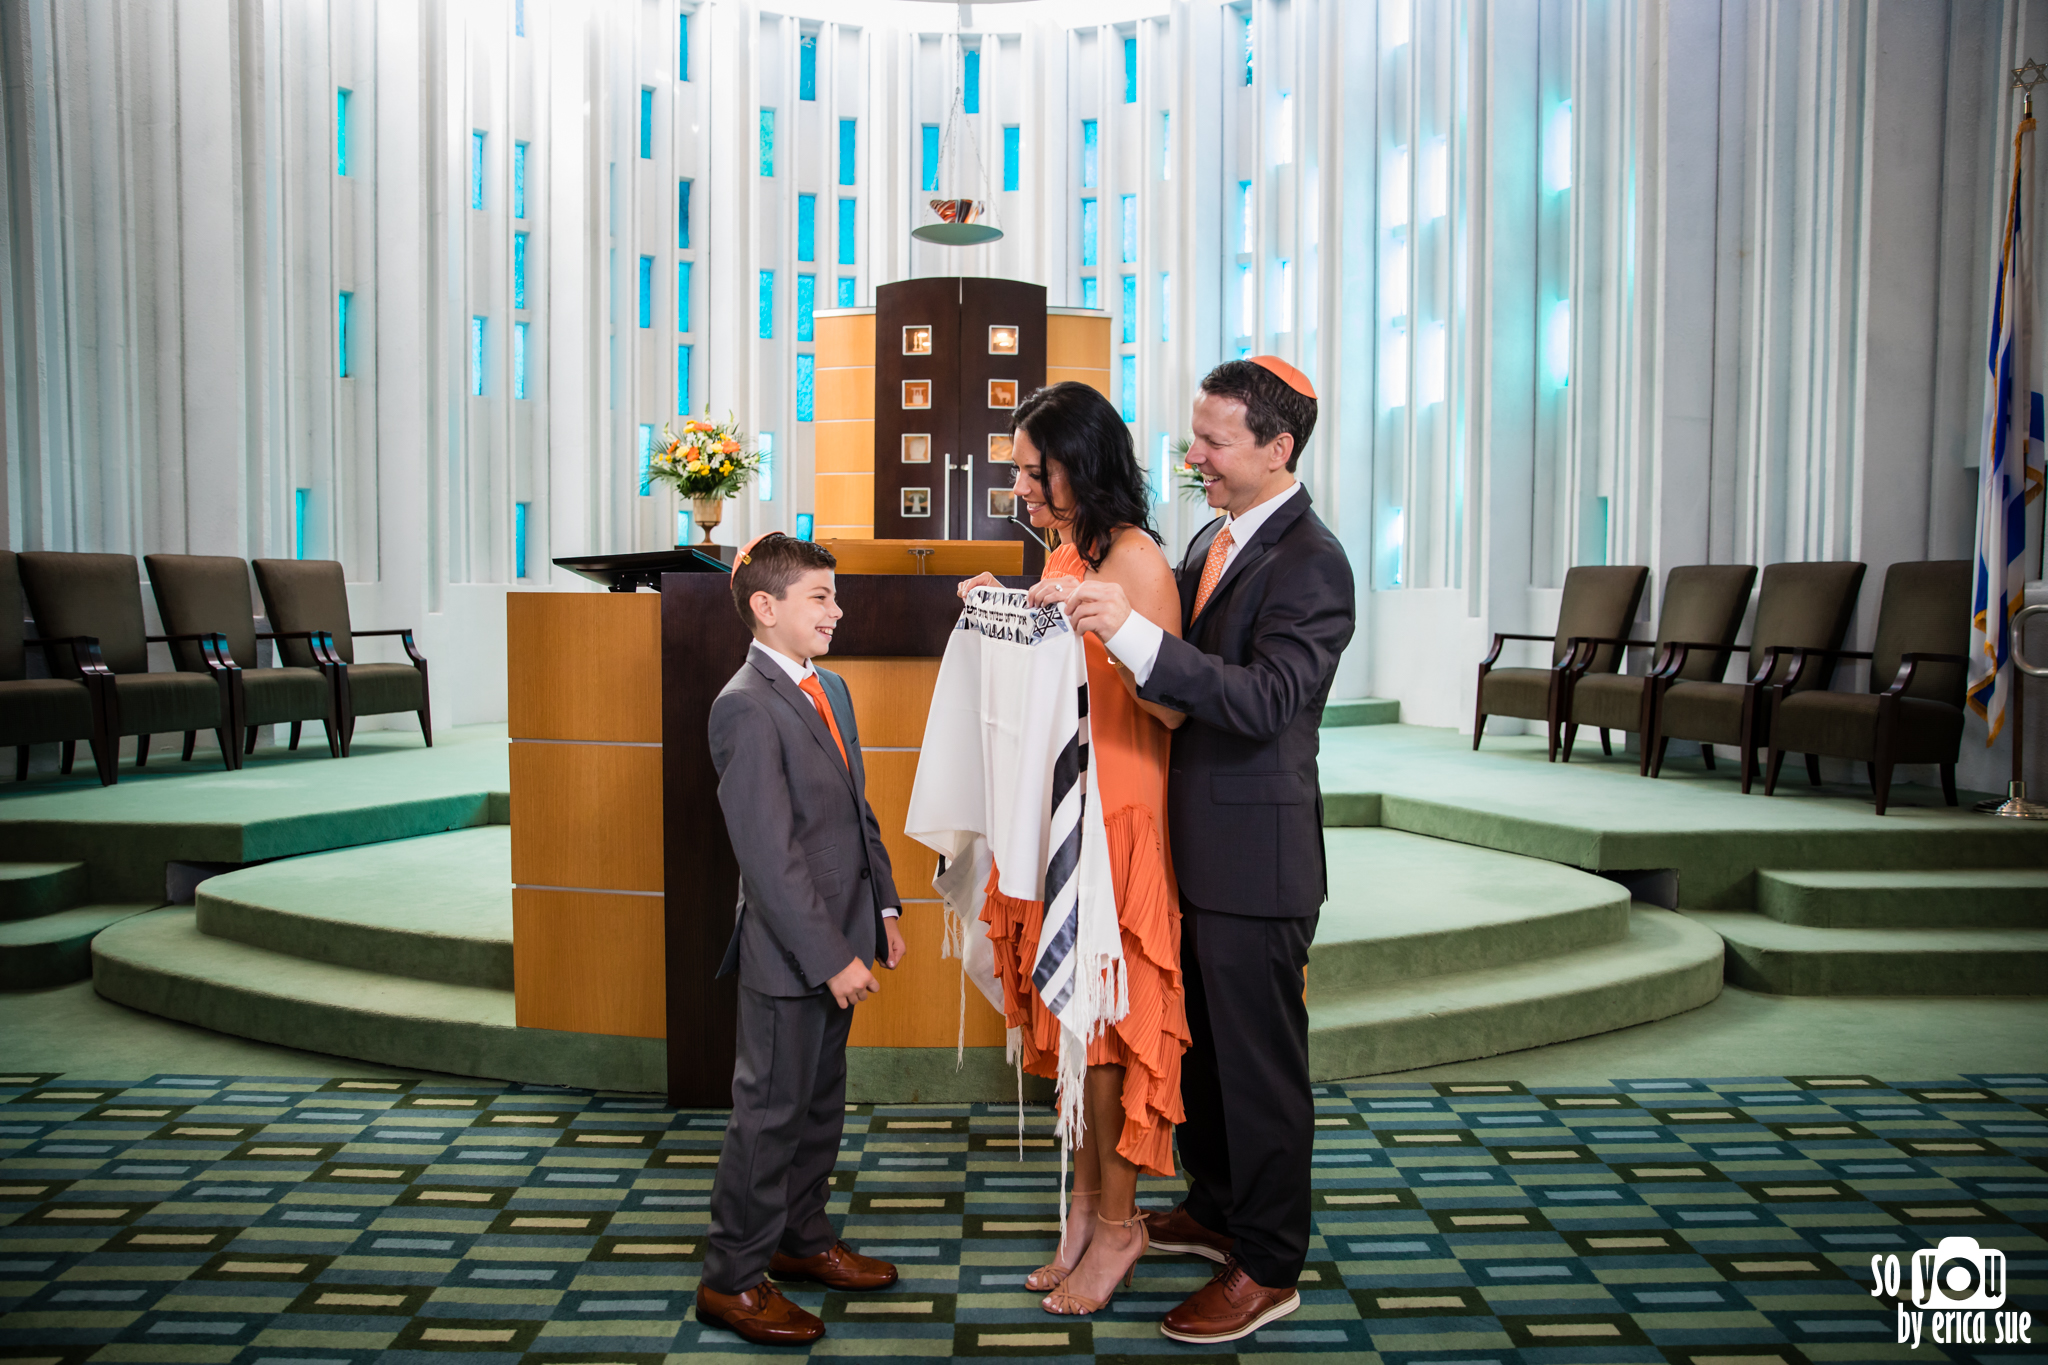 so-you-by-erica-sue-mitzvah-photographer-temple-judea-coral-gables-university-of-miami-hillel-1295.jpg